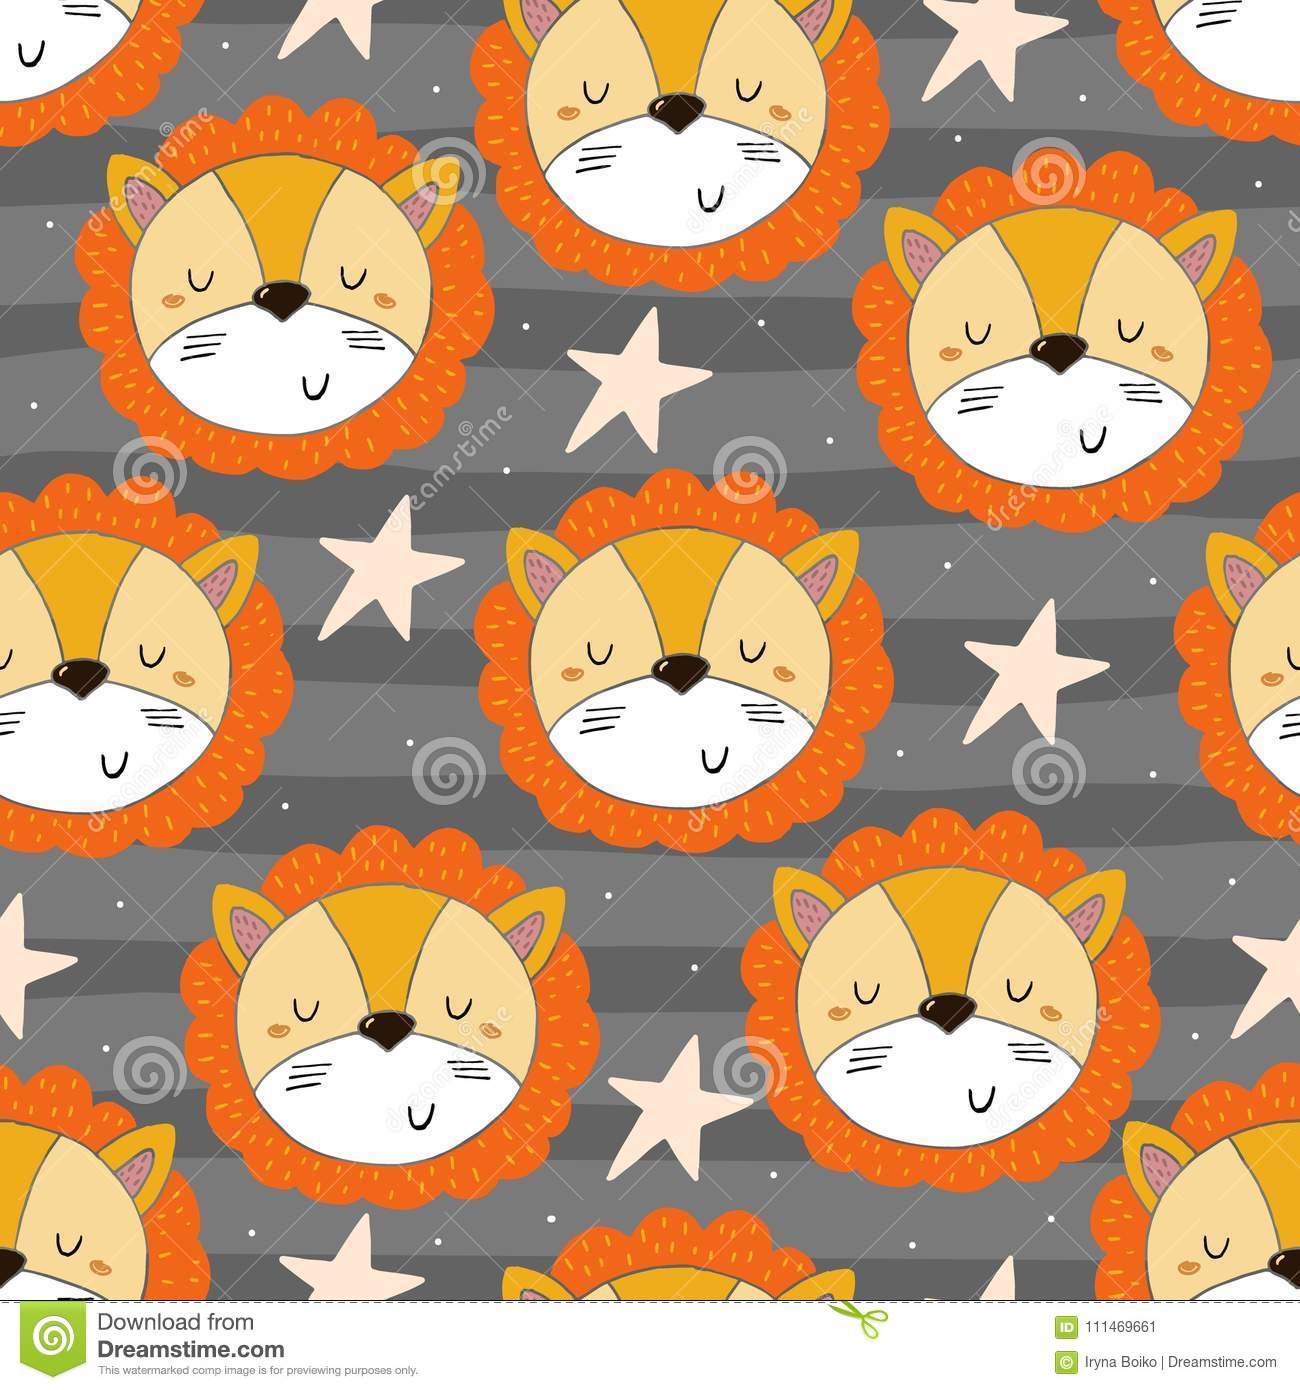 Cute Lion Pattern Print For Kids Stock Vector - Illustration of ...